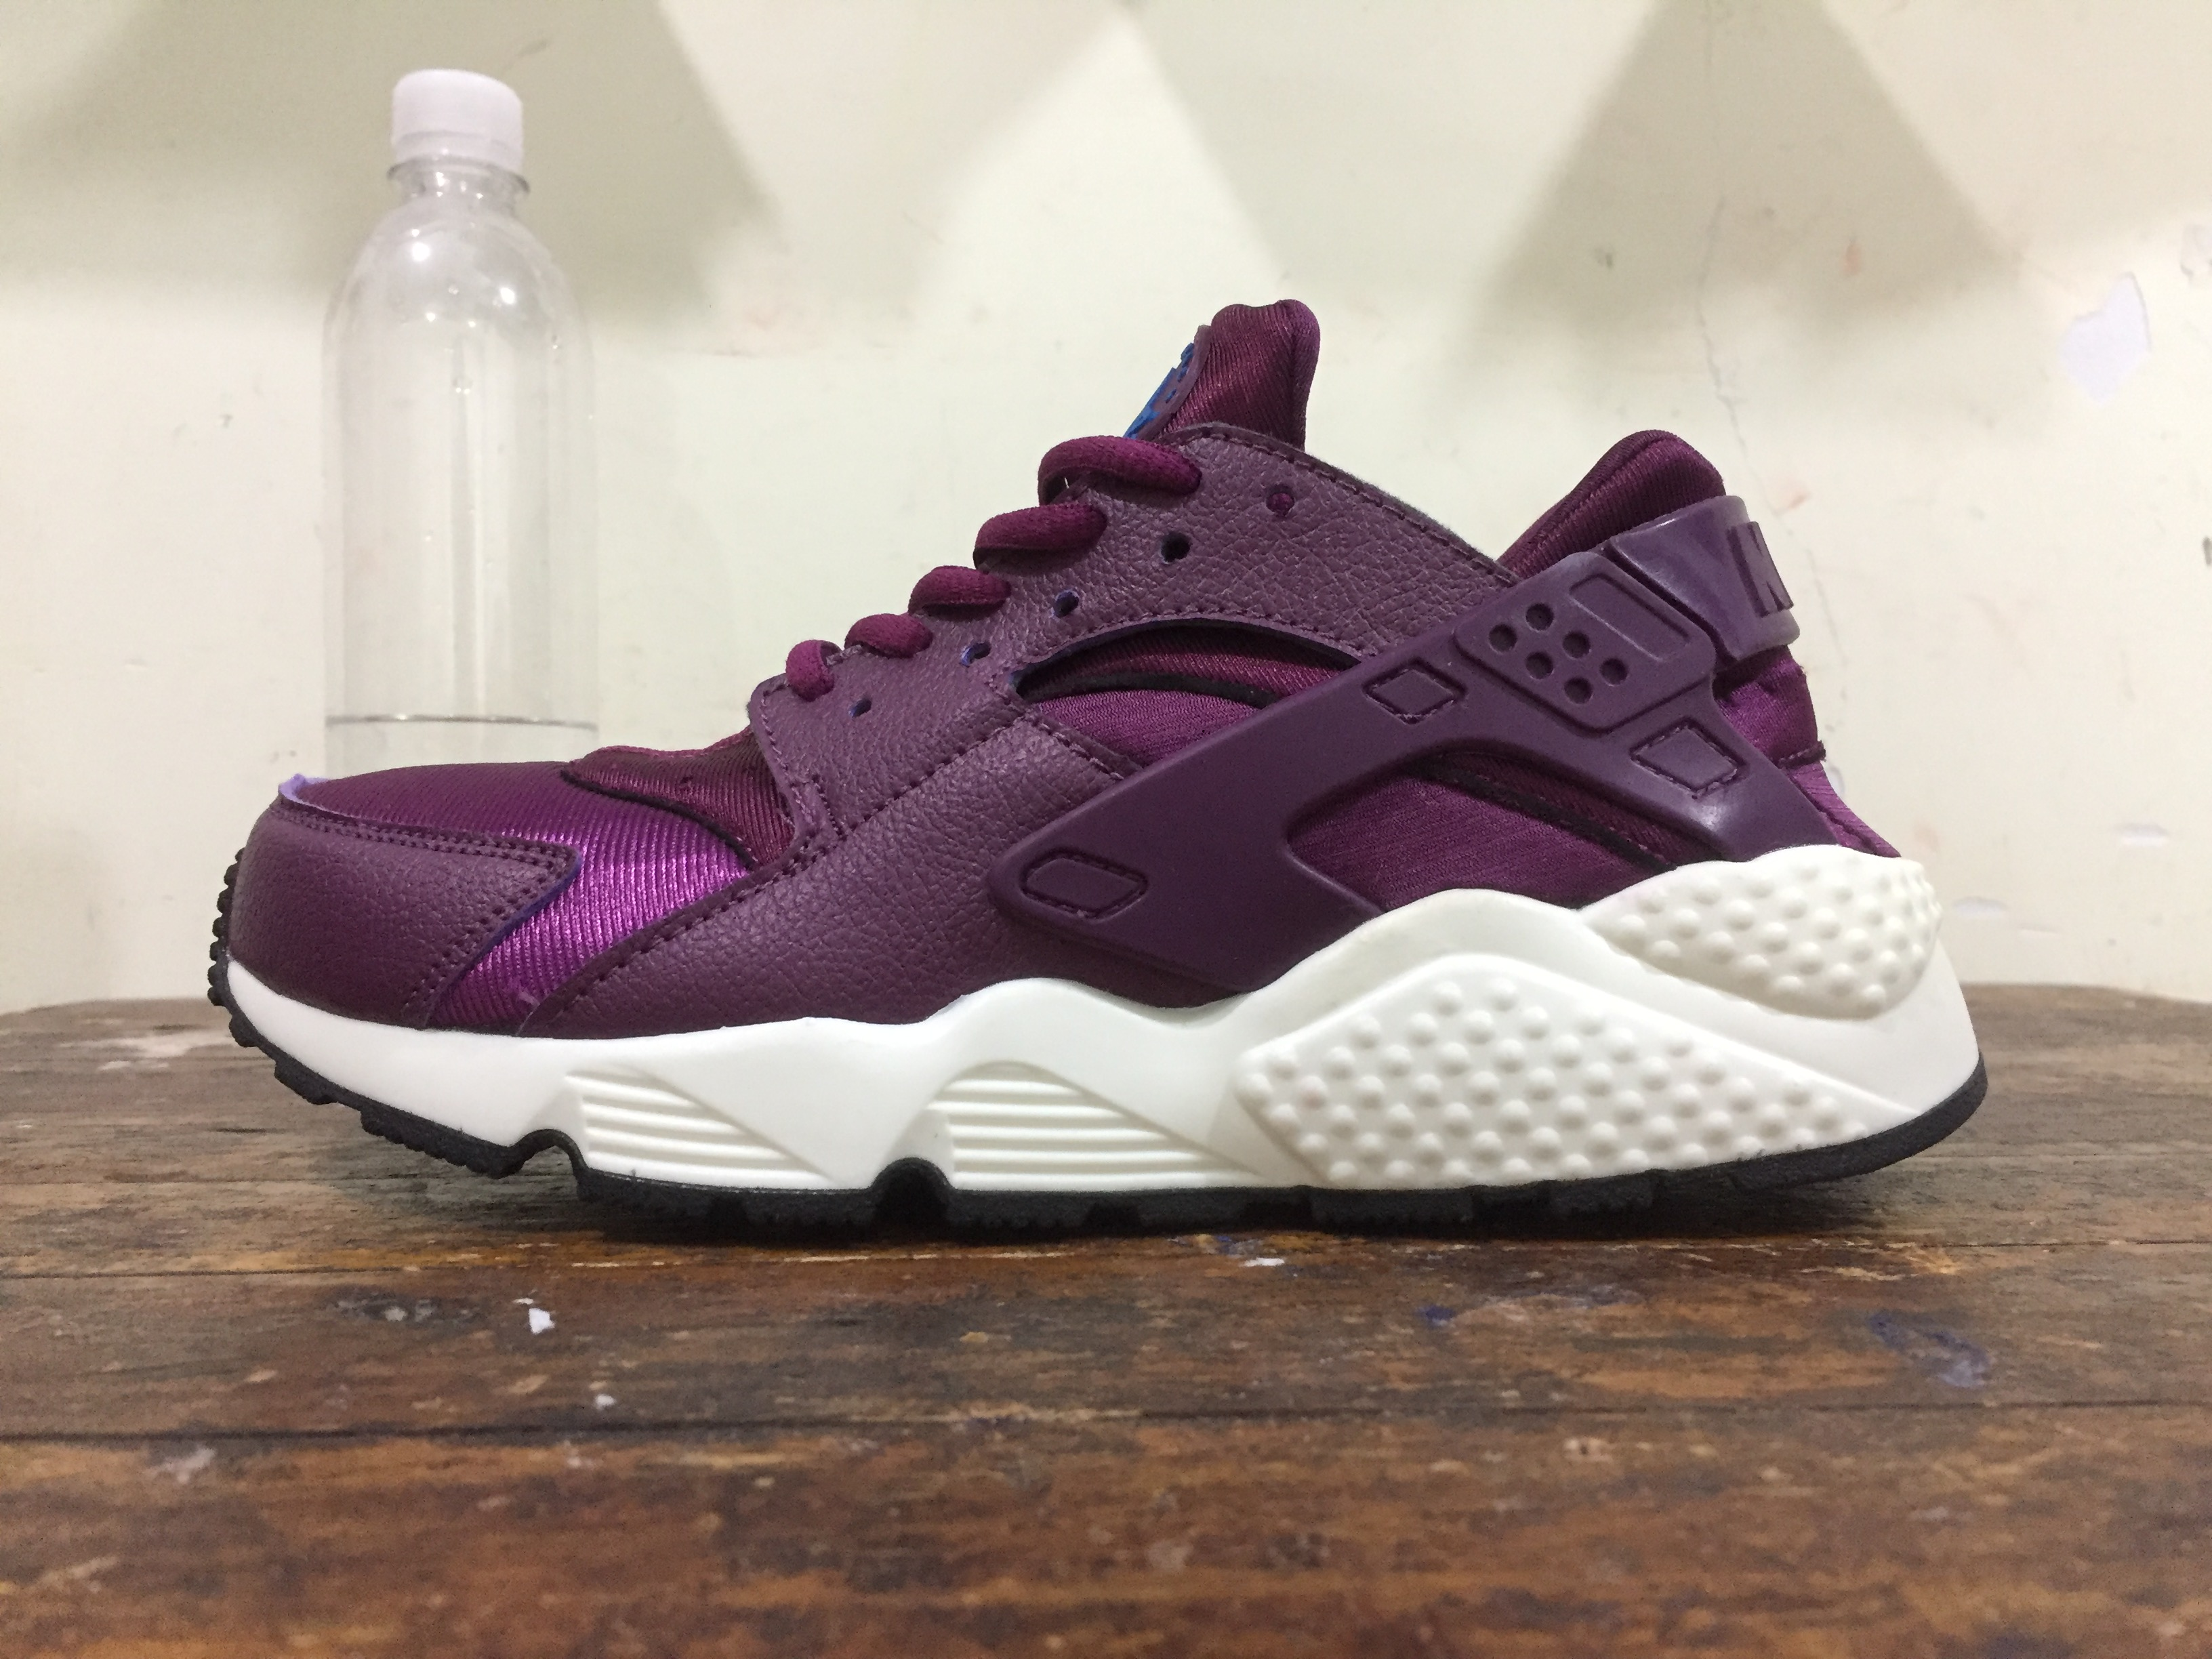 new zealand nike air huarache purple white. u2039 u203a 79901 bfe31